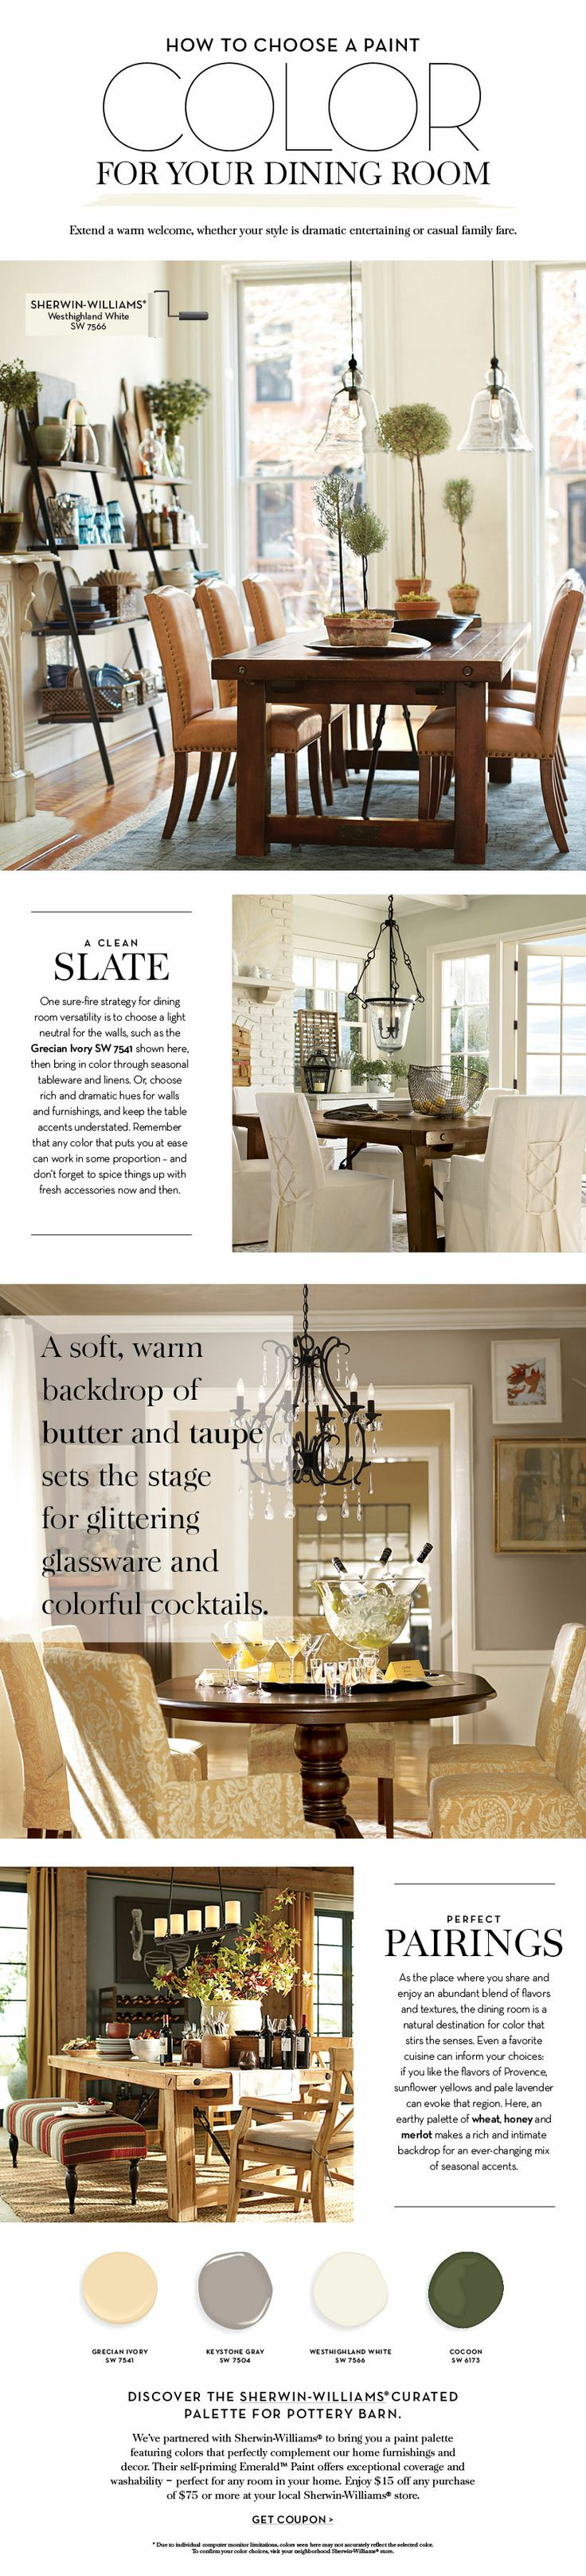 1000 Ideas About Pottery Barn Colors On Pinterest Pottery Barn Paint Sherwin Williams